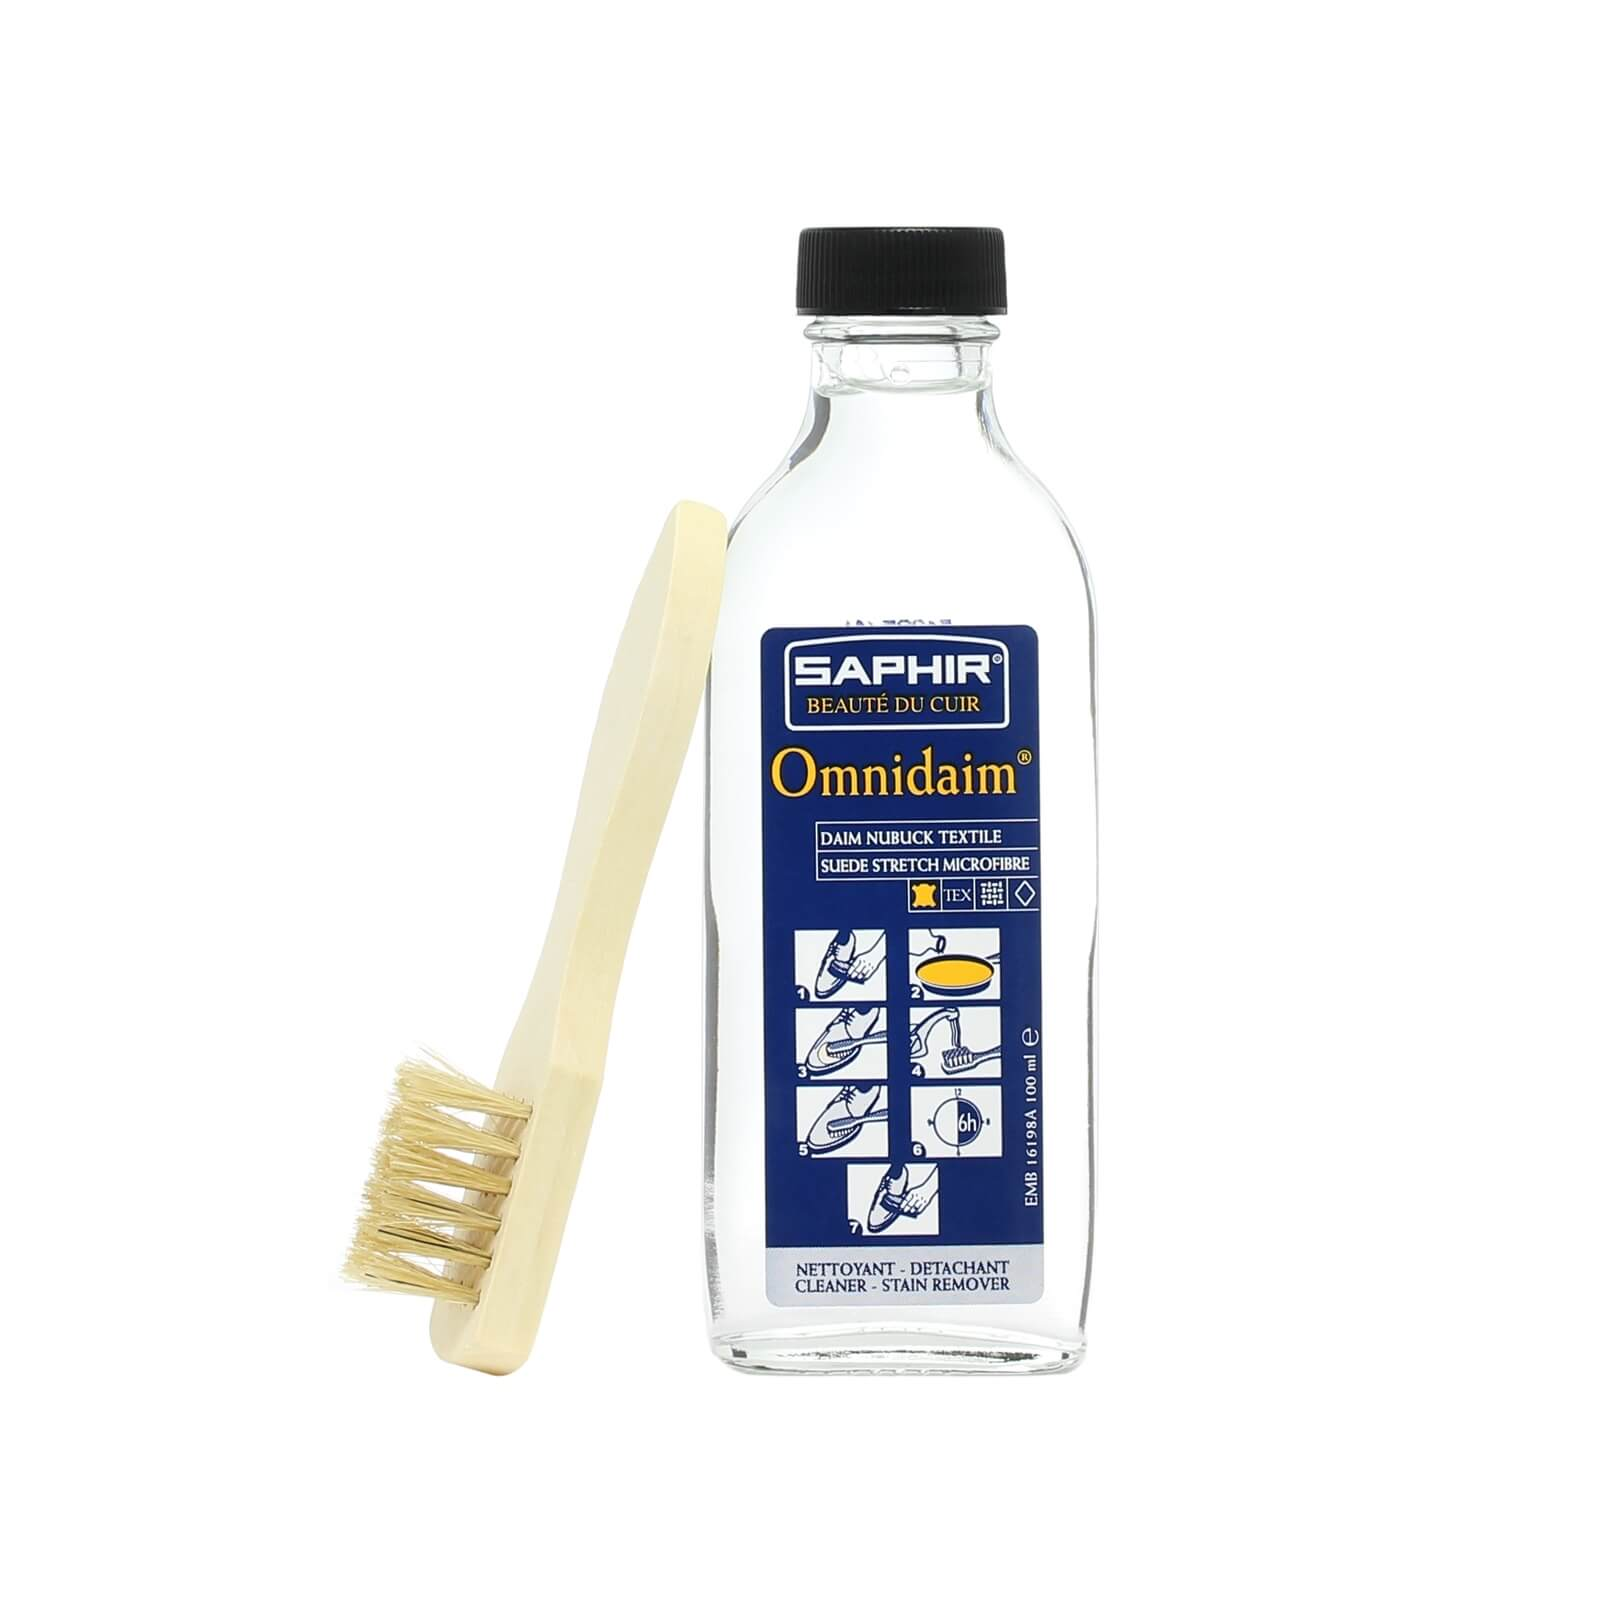 saphir omnidaim suede cleaner for shoes